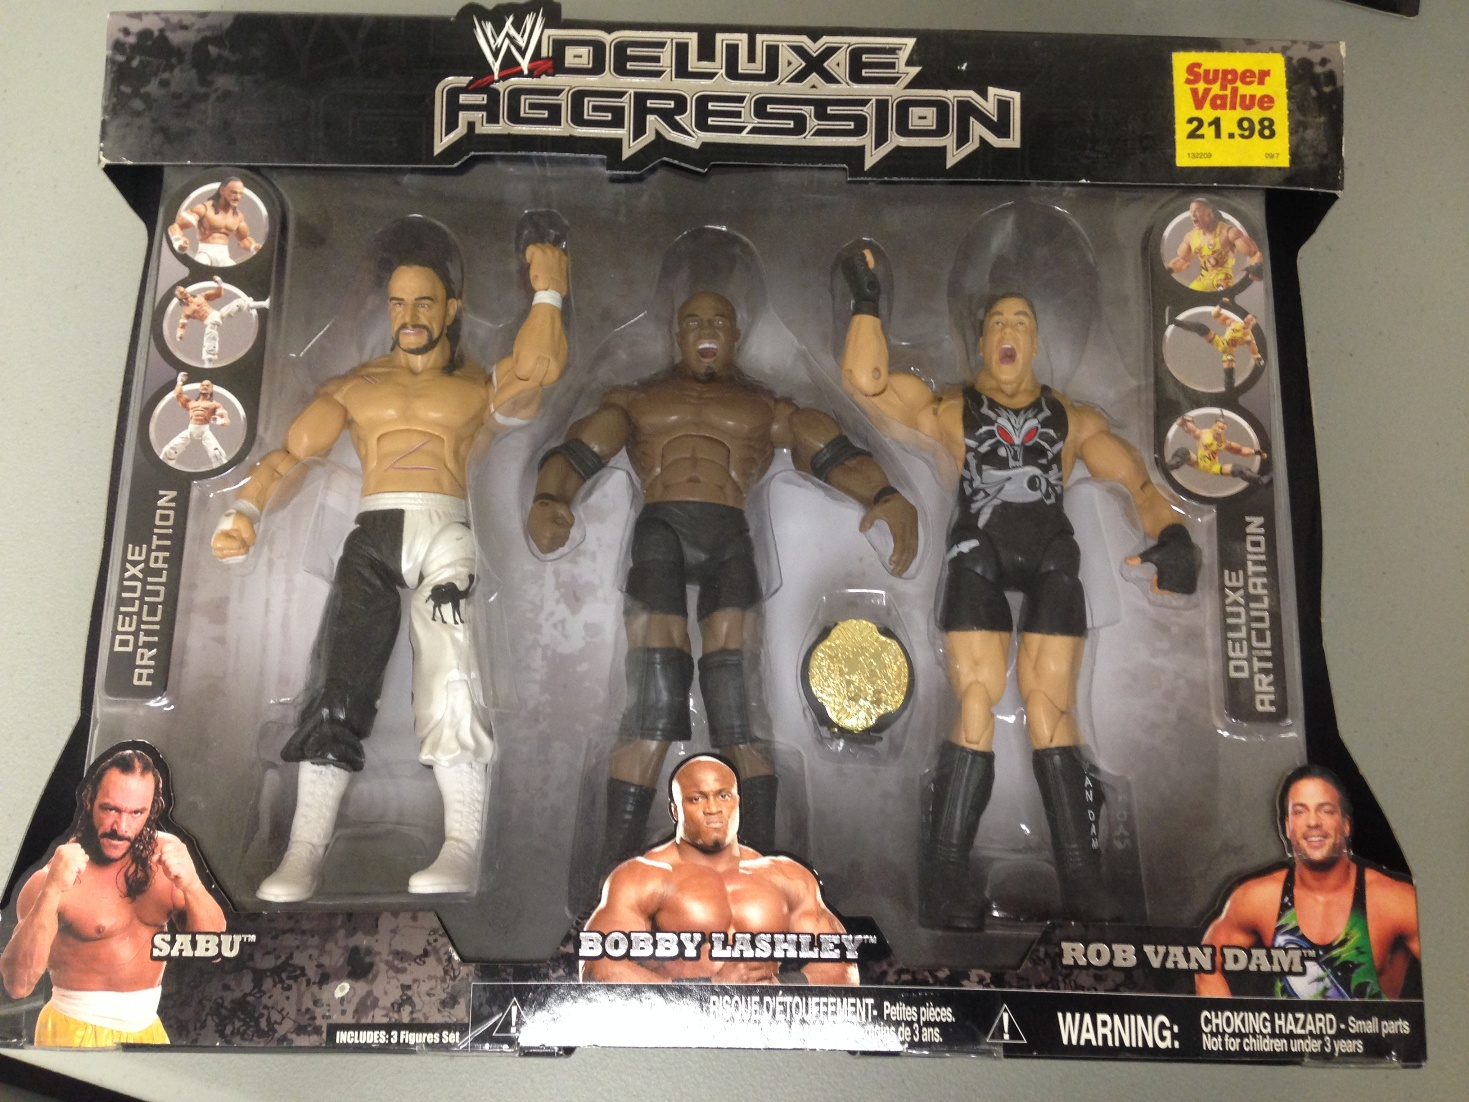 Bobby Lashley, Rob Van Dam and Sabu